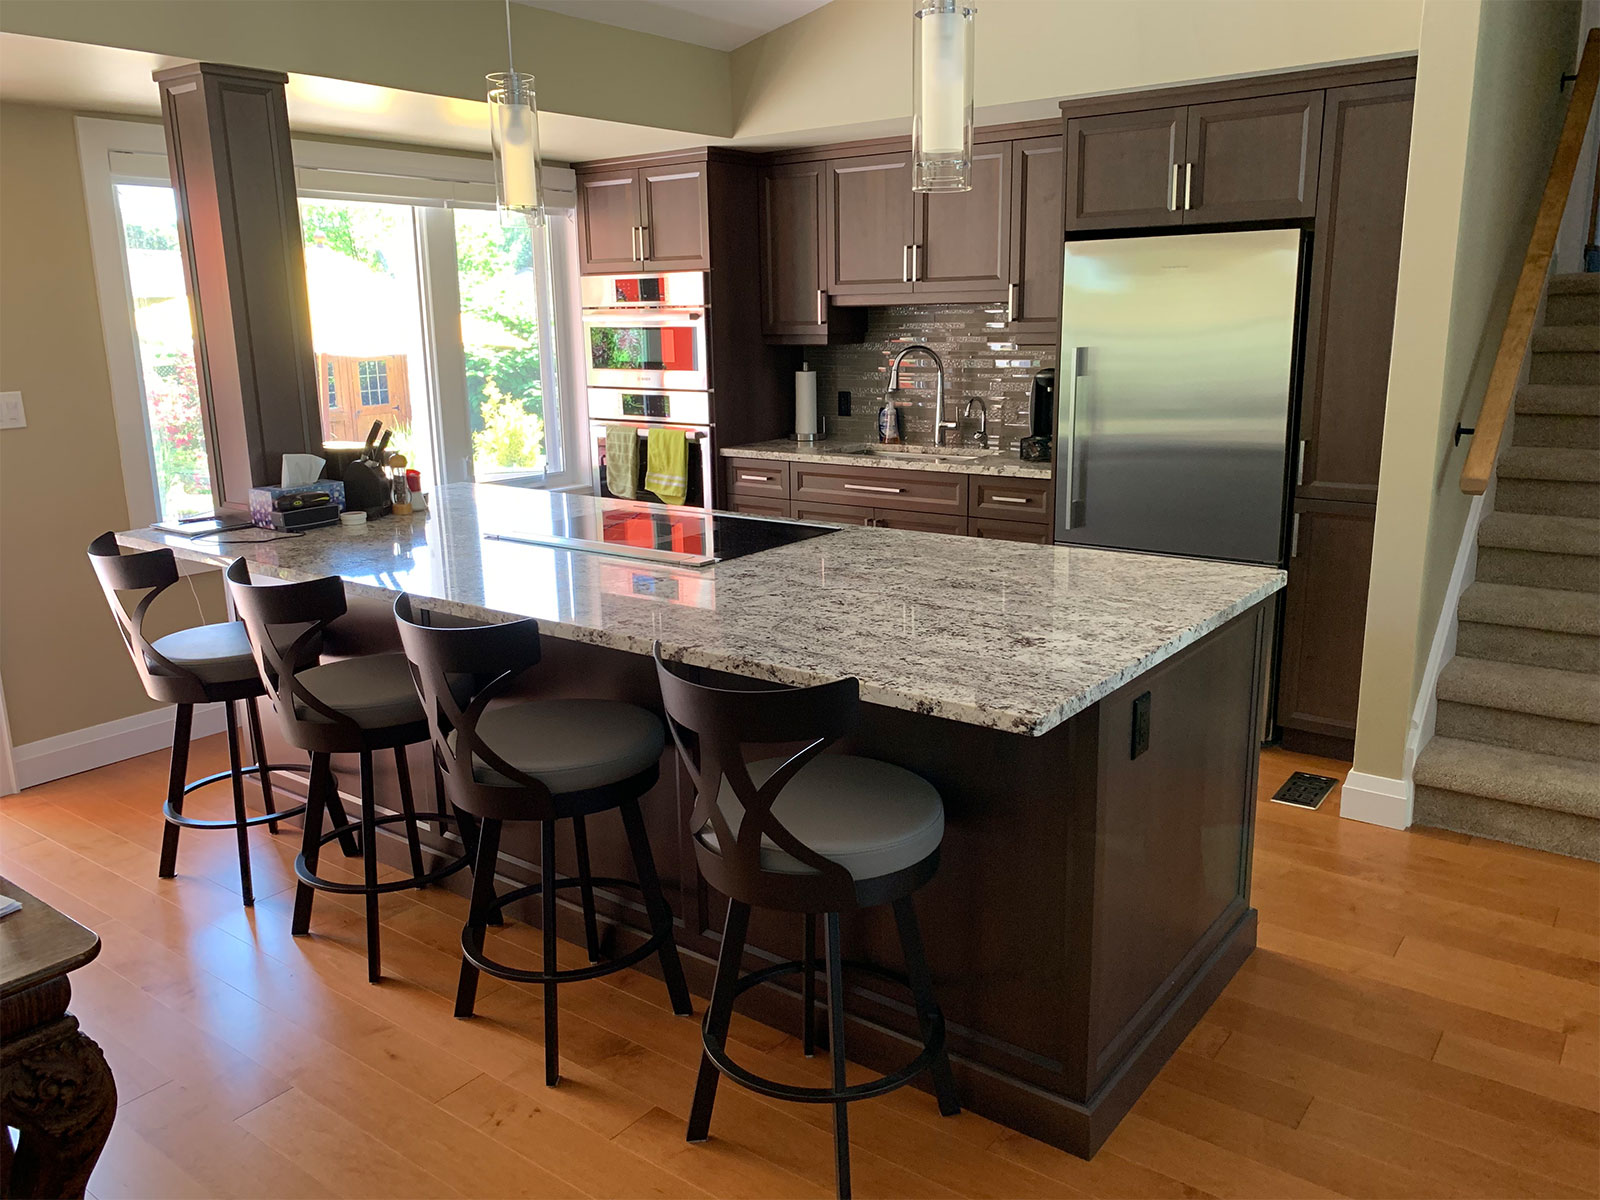 Large Granite Kitchen Island - Cherry Cabinets